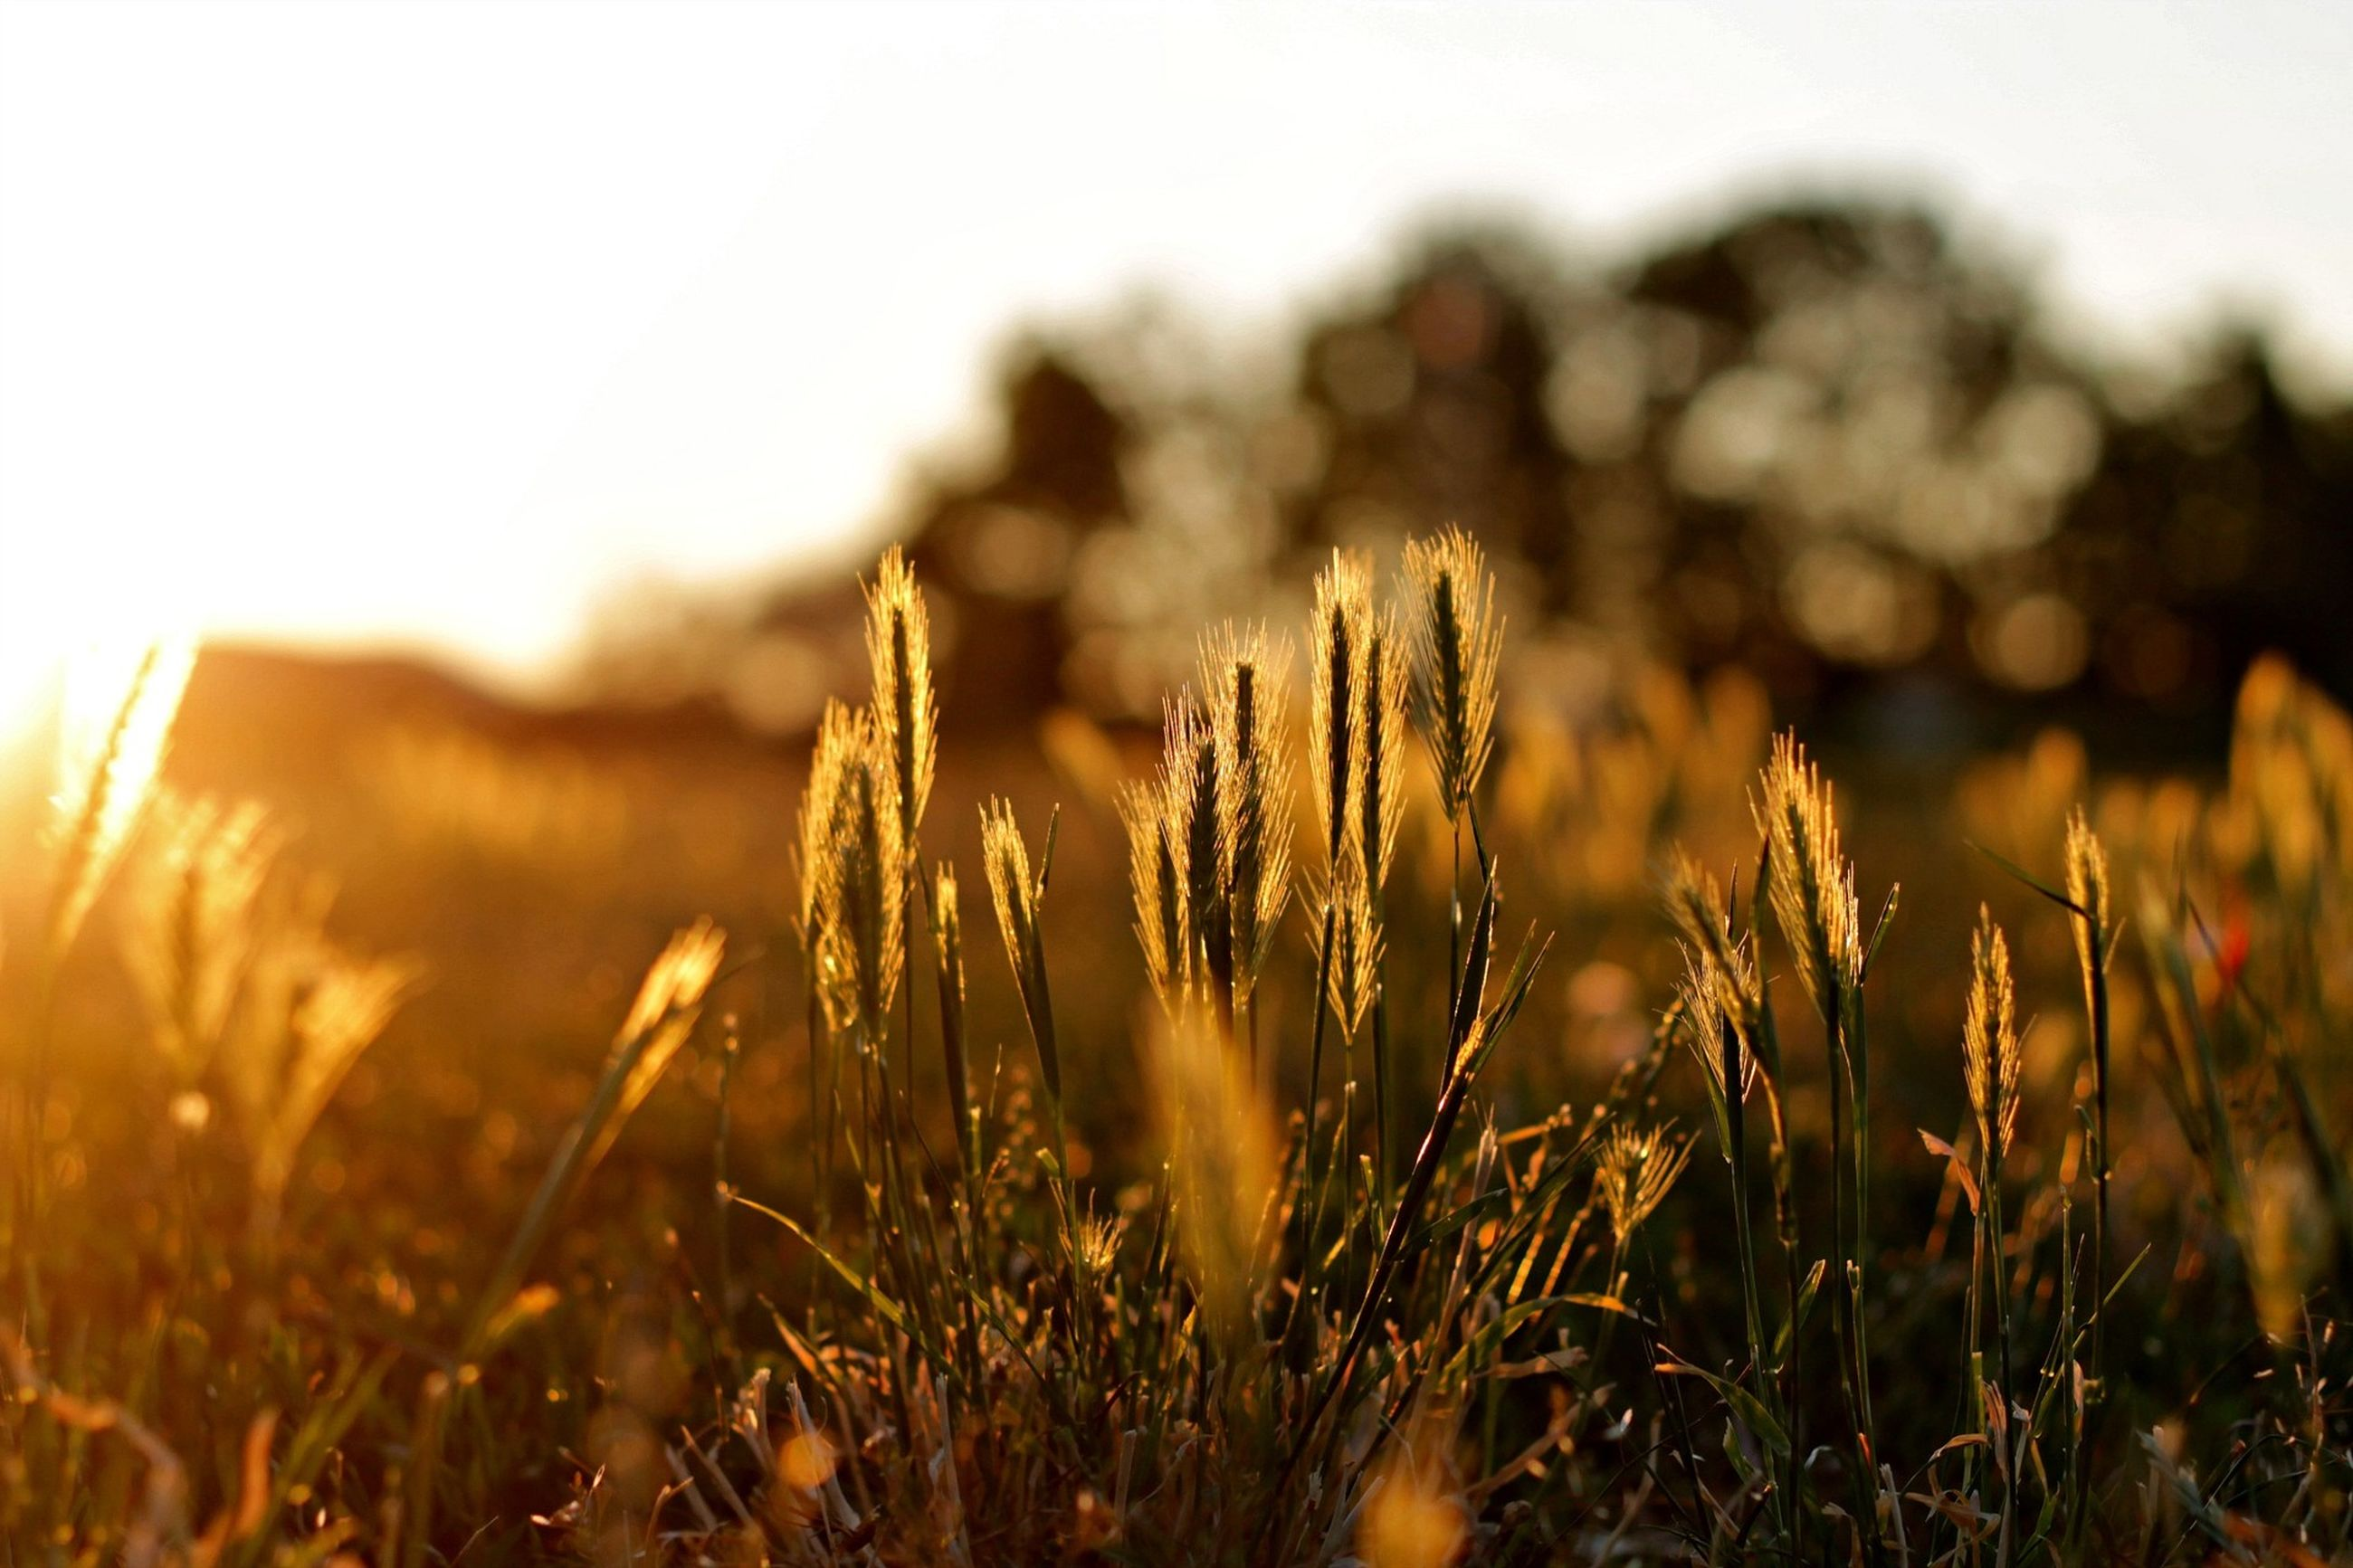 growth, field, focus on foreground, grass, plant, close-up, nature, selective focus, tranquility, beauty in nature, growing, landscape, clear sky, sky, tranquil scene, outdoors, no people, day, sunlight, scenics